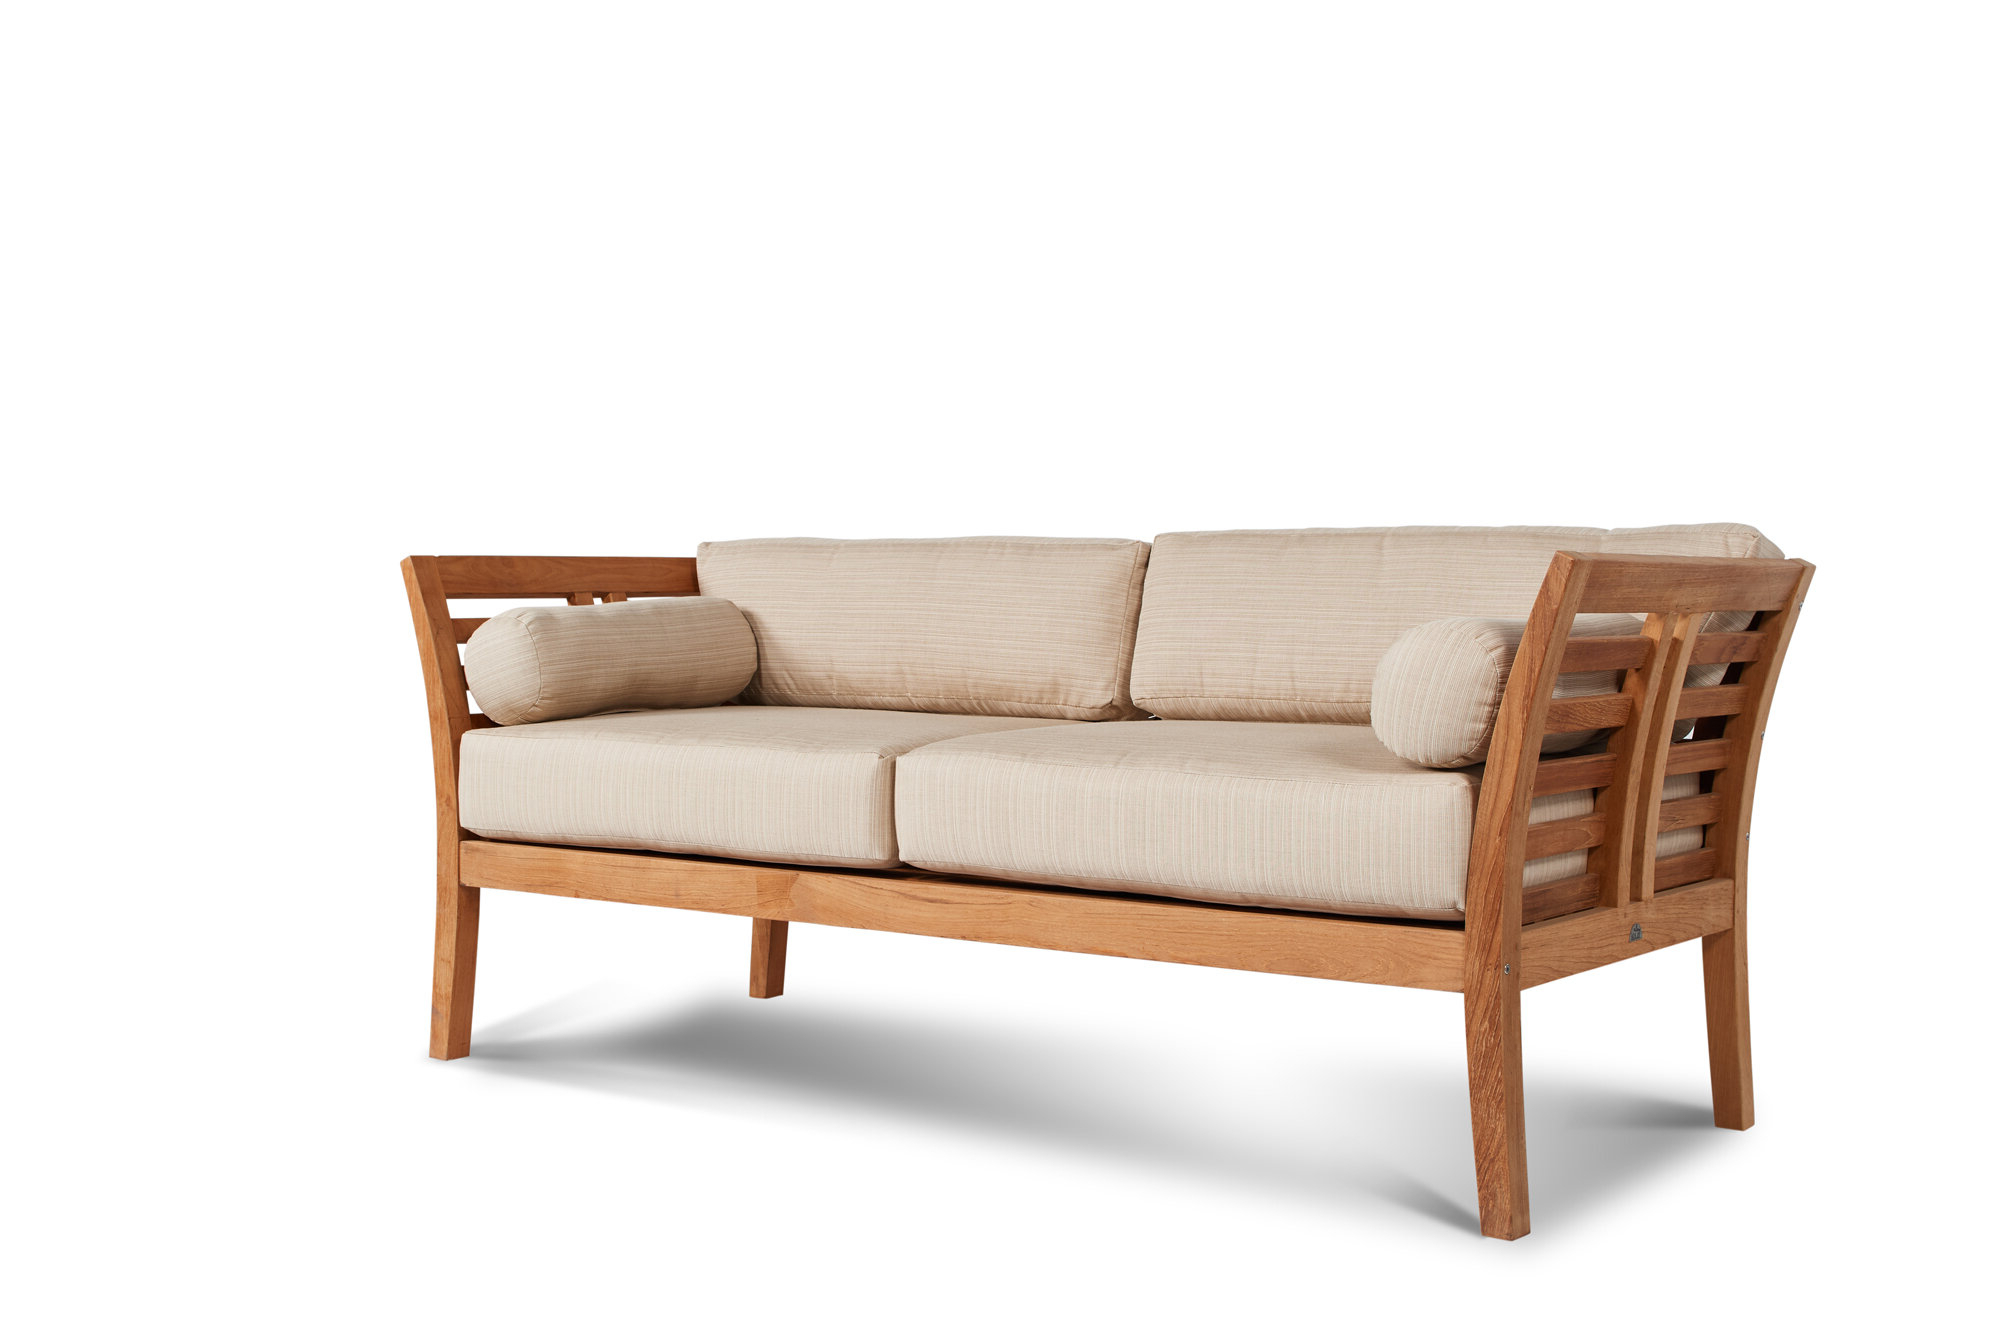 Brecht Patio Sectionals With Cushions In Most Up To Date Fleischer Teak Patio Sofa With Sunbrella Cushions (Gallery 12 of 25)